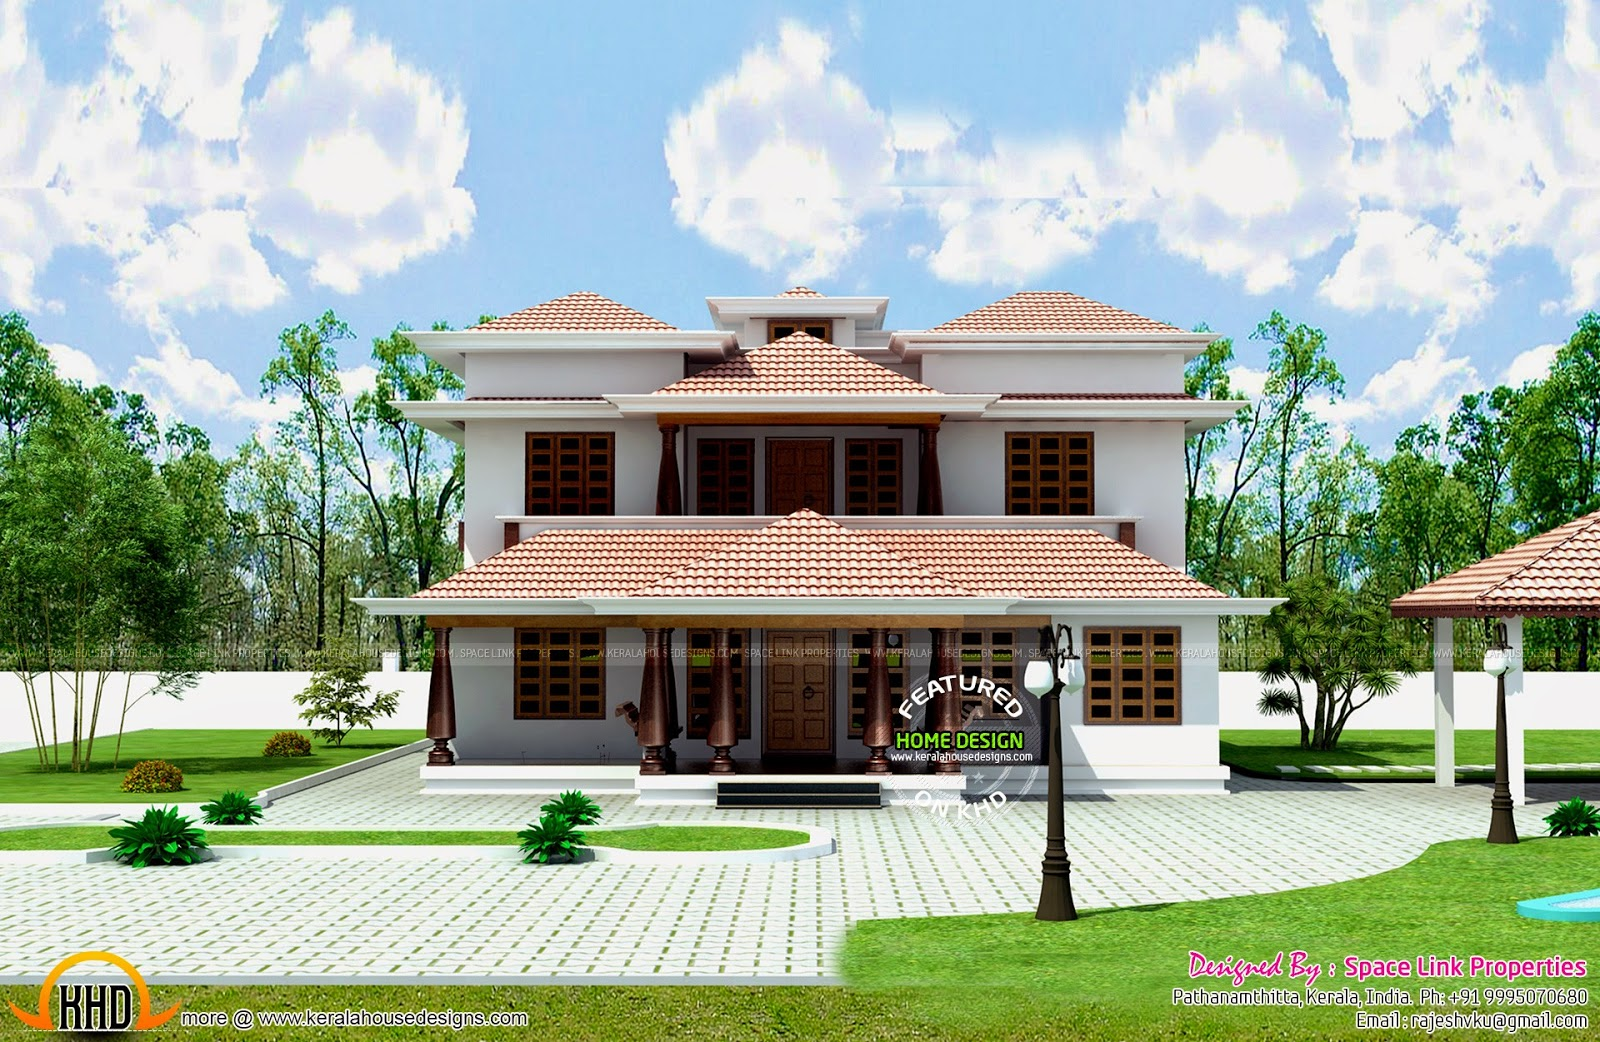 Typical kerala traditional house kerala home design and for Indian traditional house plans